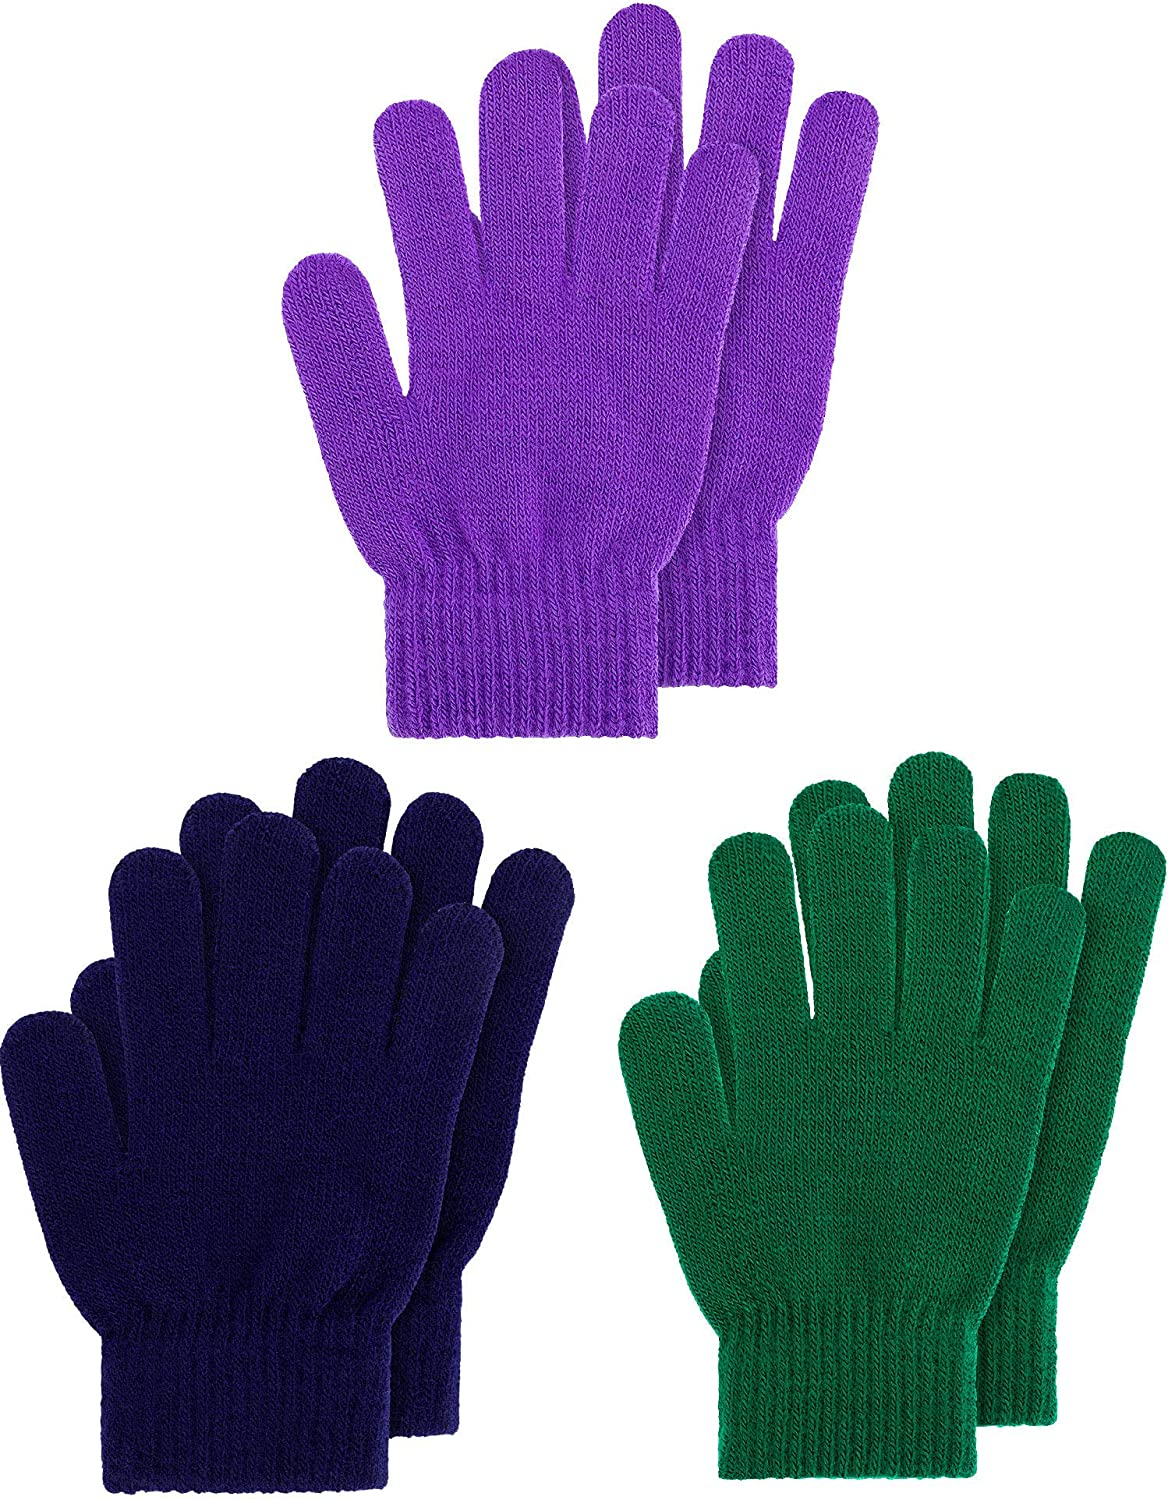 Kids Gloves Full Fingers Knitted Gloves Warm Mitten Winter Favor for Little Boys and Girls Color Set 8, 1-4 Years Size, 3 Pairs